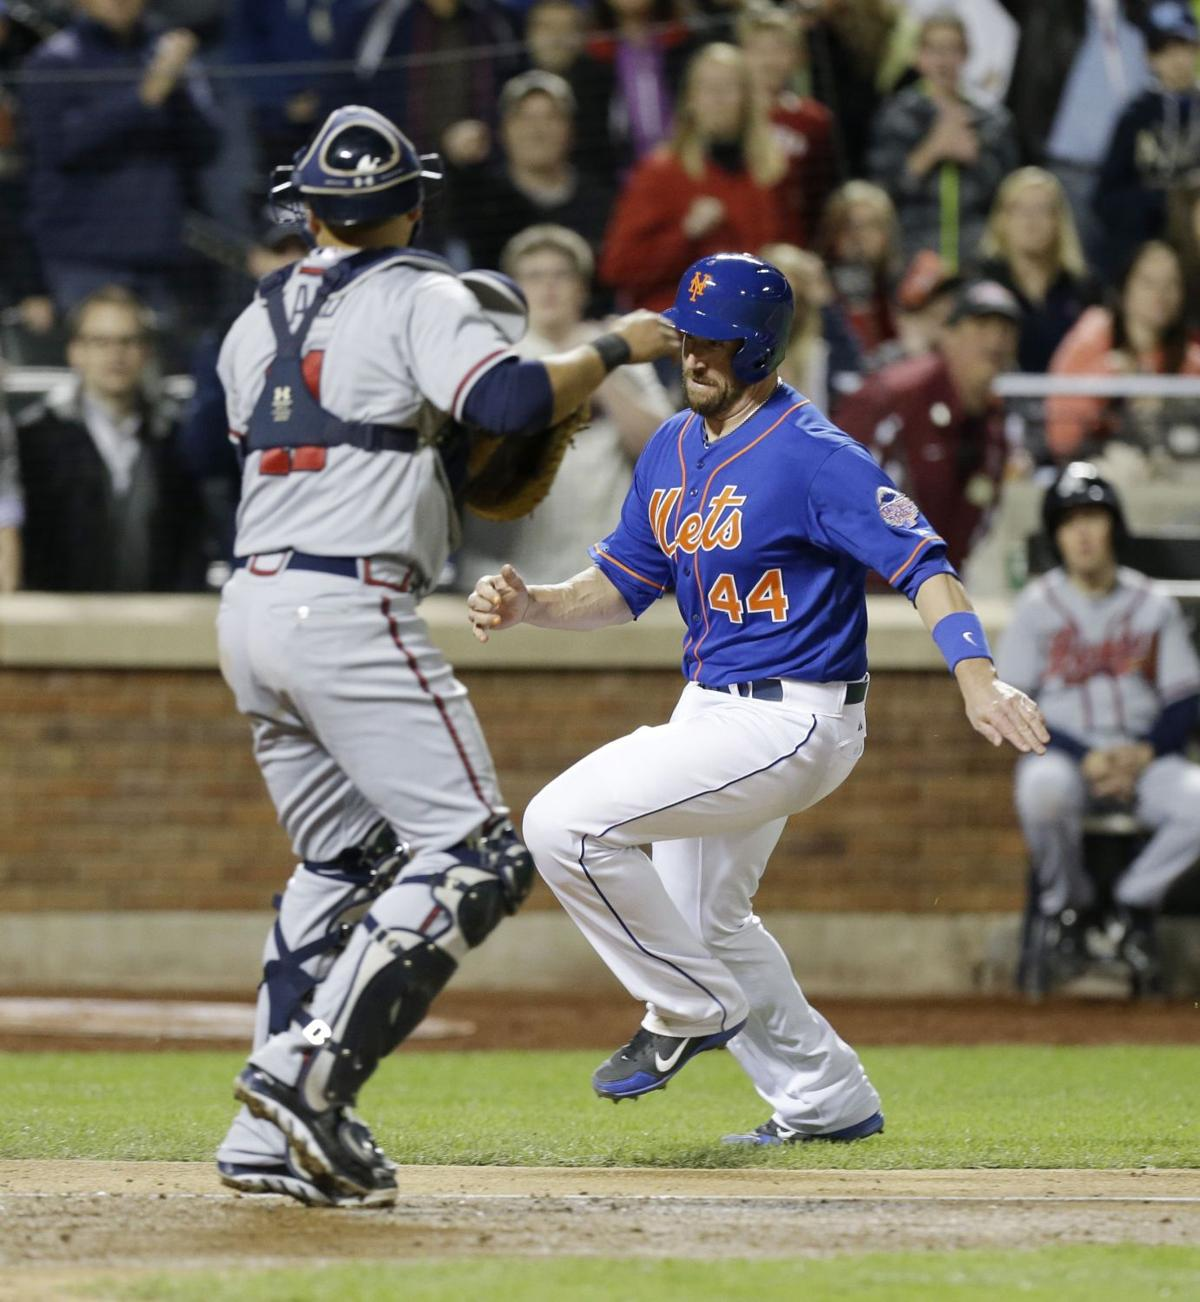 Mets rally to end Braves' streak